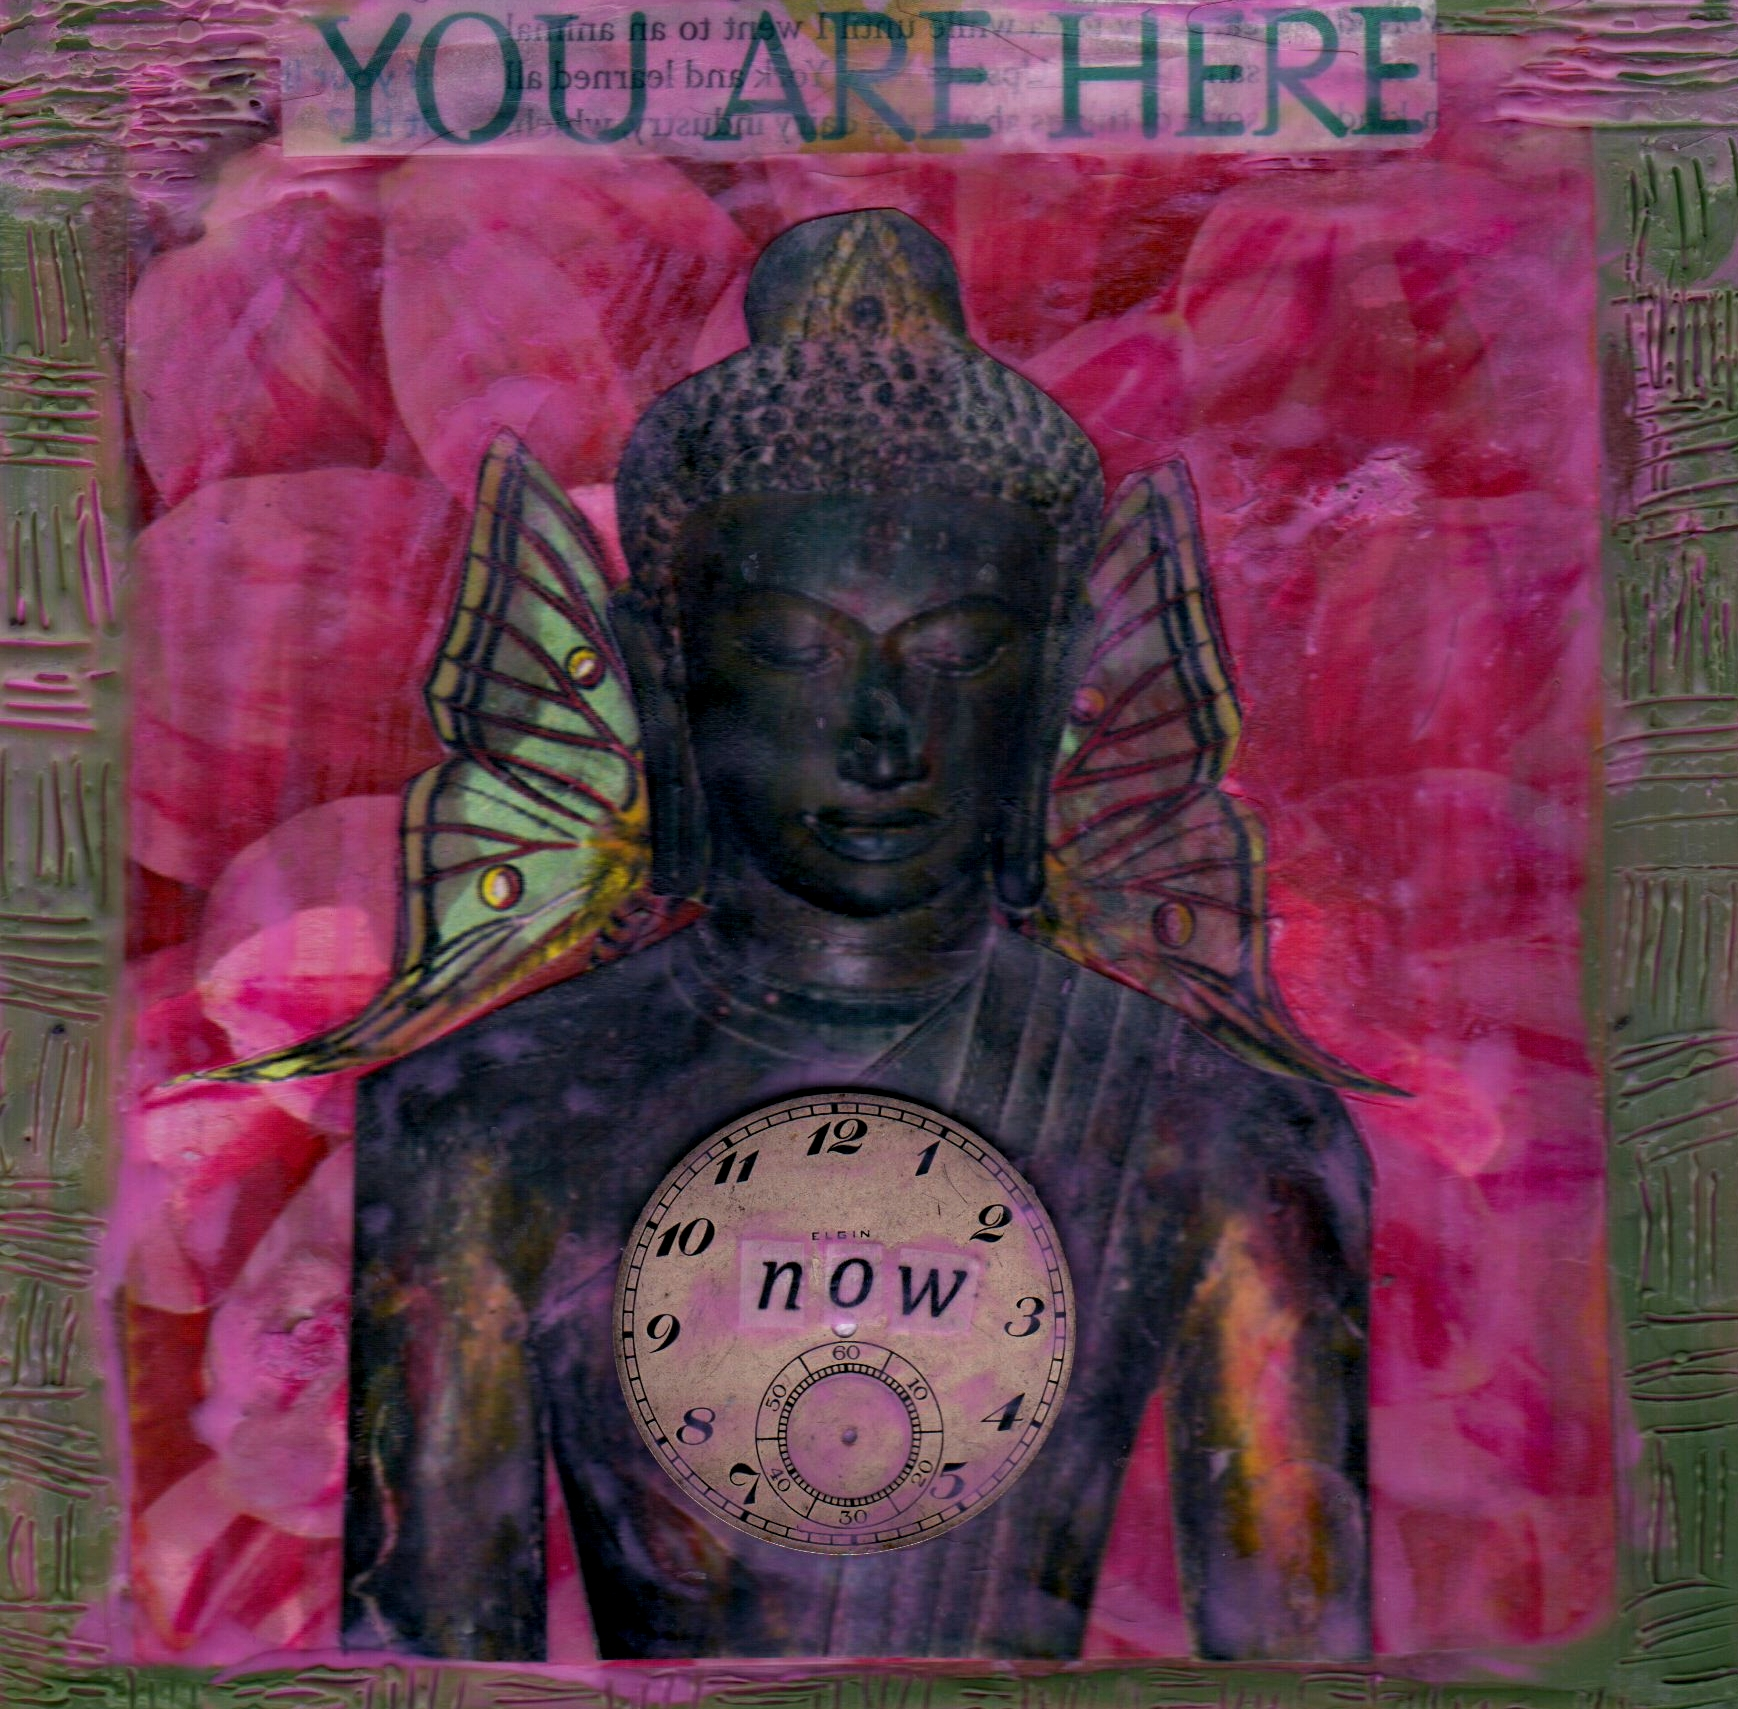 You Are Here Now, mixed media encaustic by Courtney Putnam